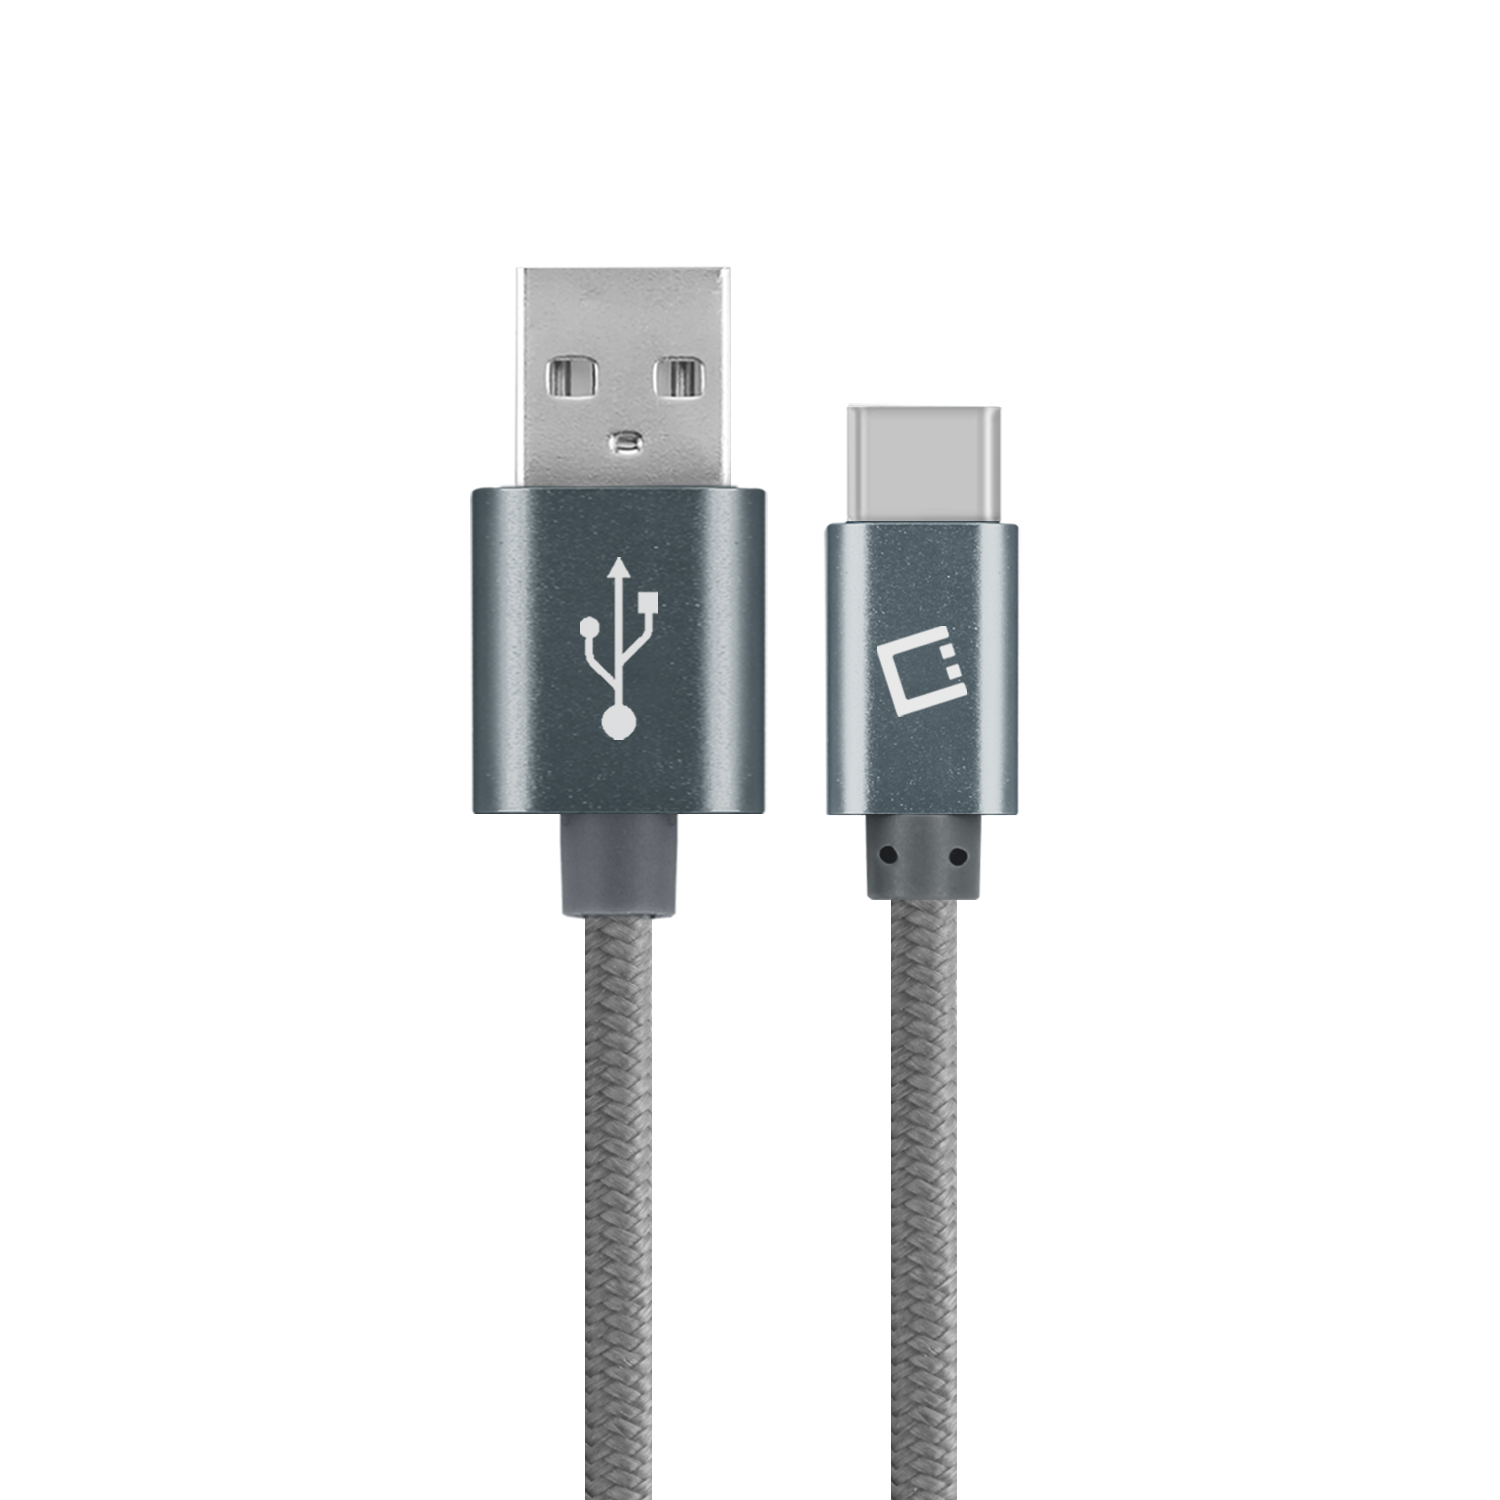 Samsung Galaxy S20 USB Type-C To Type-A Braided Data Power Cable Grey 10ft Braided